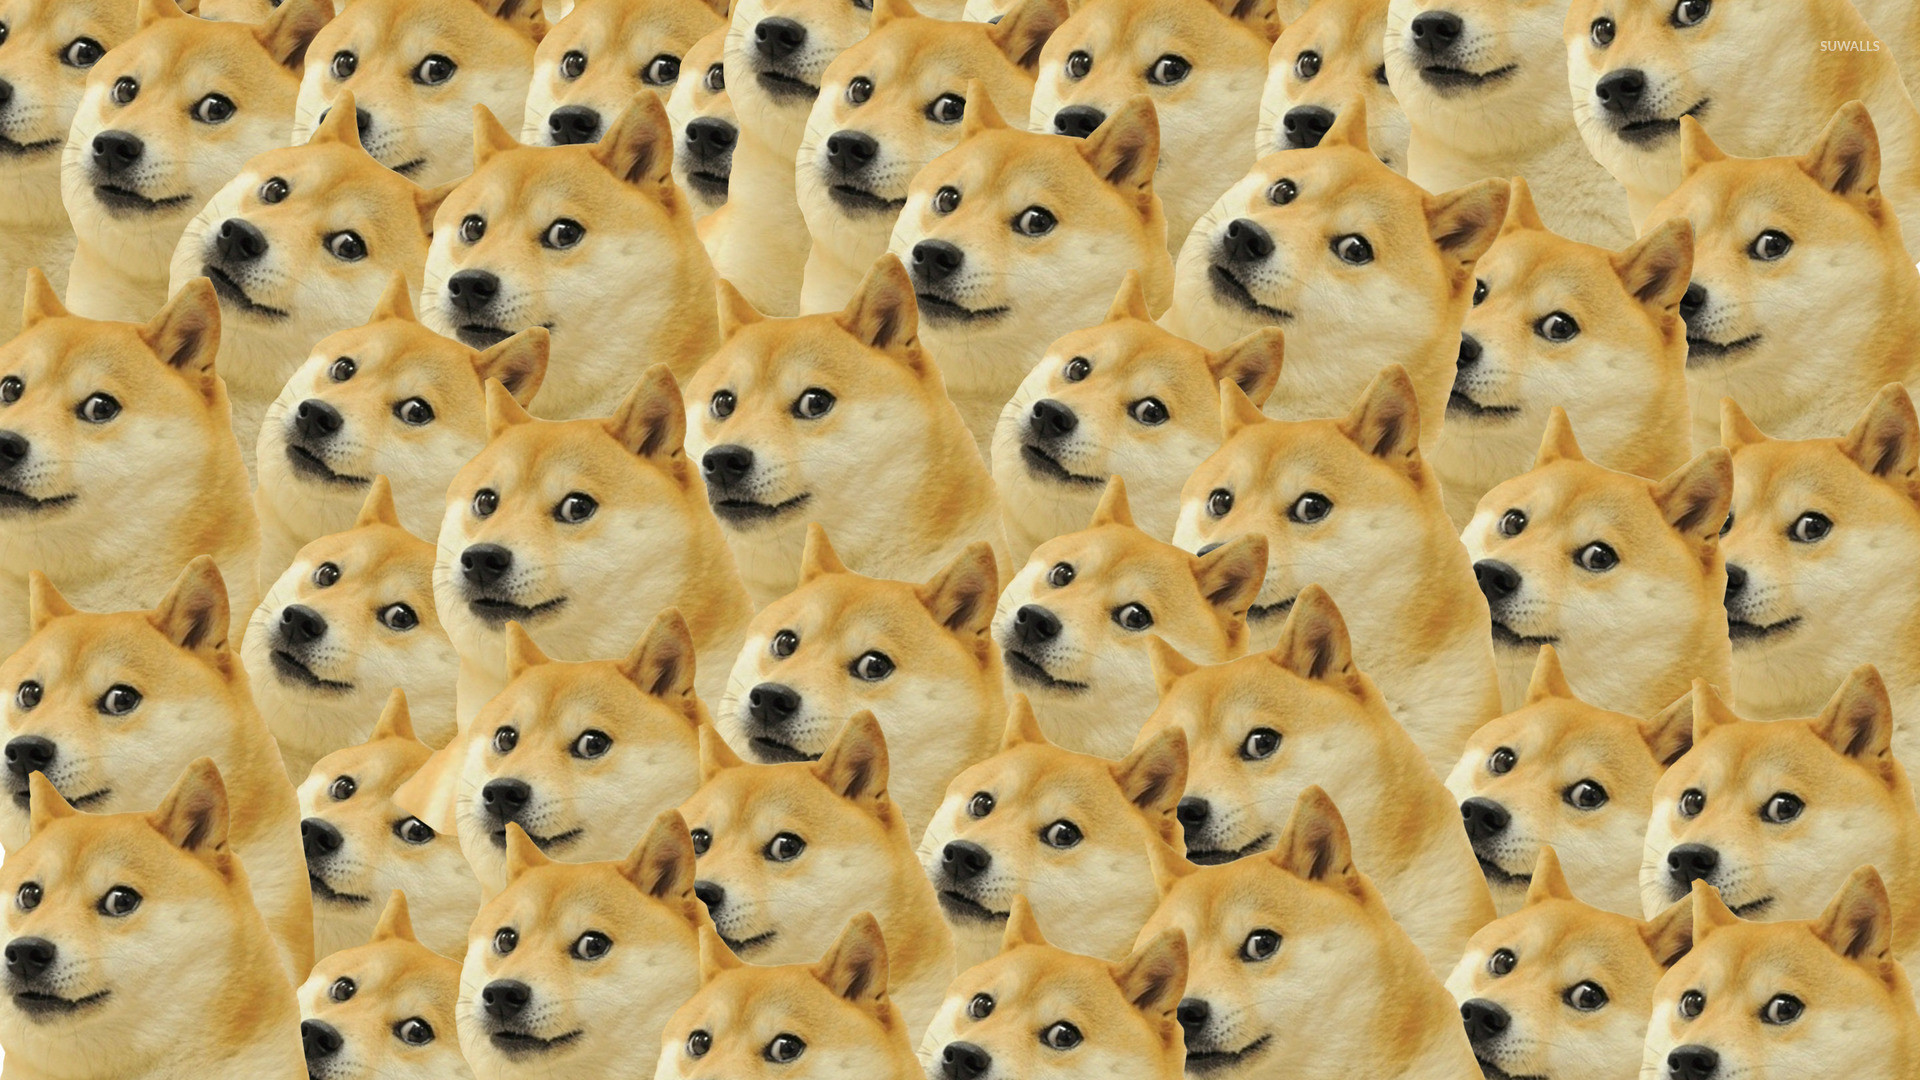 doge meme wallpapers pattern